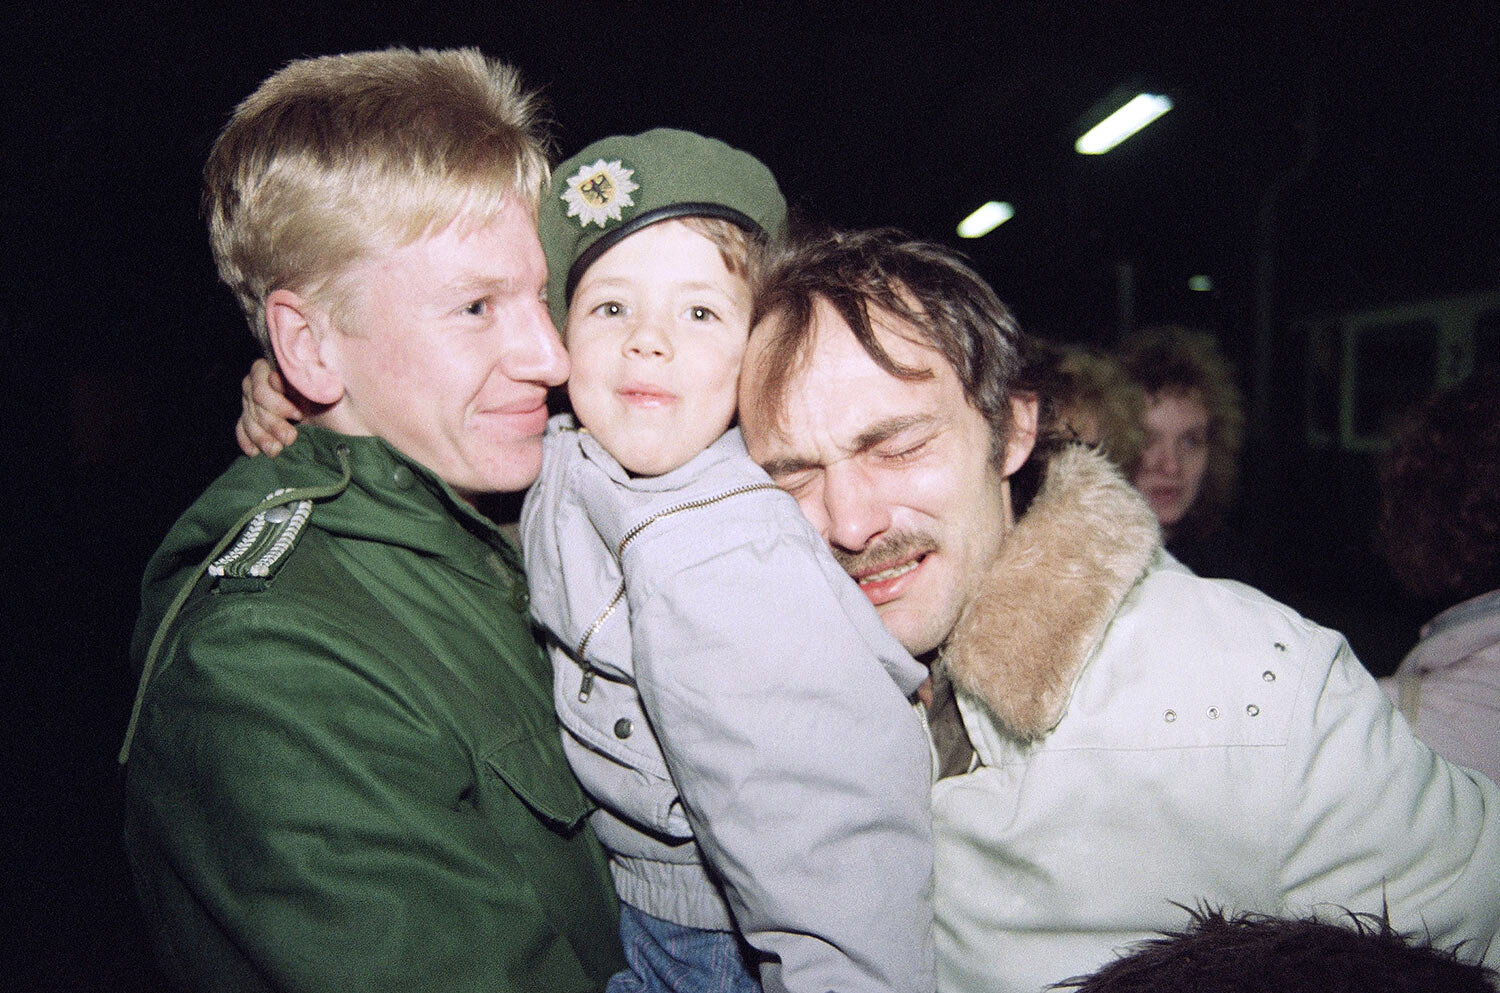 """Heinz Joachim Nickel, right, a member of the East German opposition group """"New Forum,"""" is overcome with emotion as he and his son, Christian, center, arrive in Helmstedt, West Germany by train from East Germany, Nov. 11, 1989. Christian wears a cap belonging to an unidentified West German border guard, left. Nickel said he and his son will return to East Germany. (AP Photo/Claus Eckert)"""